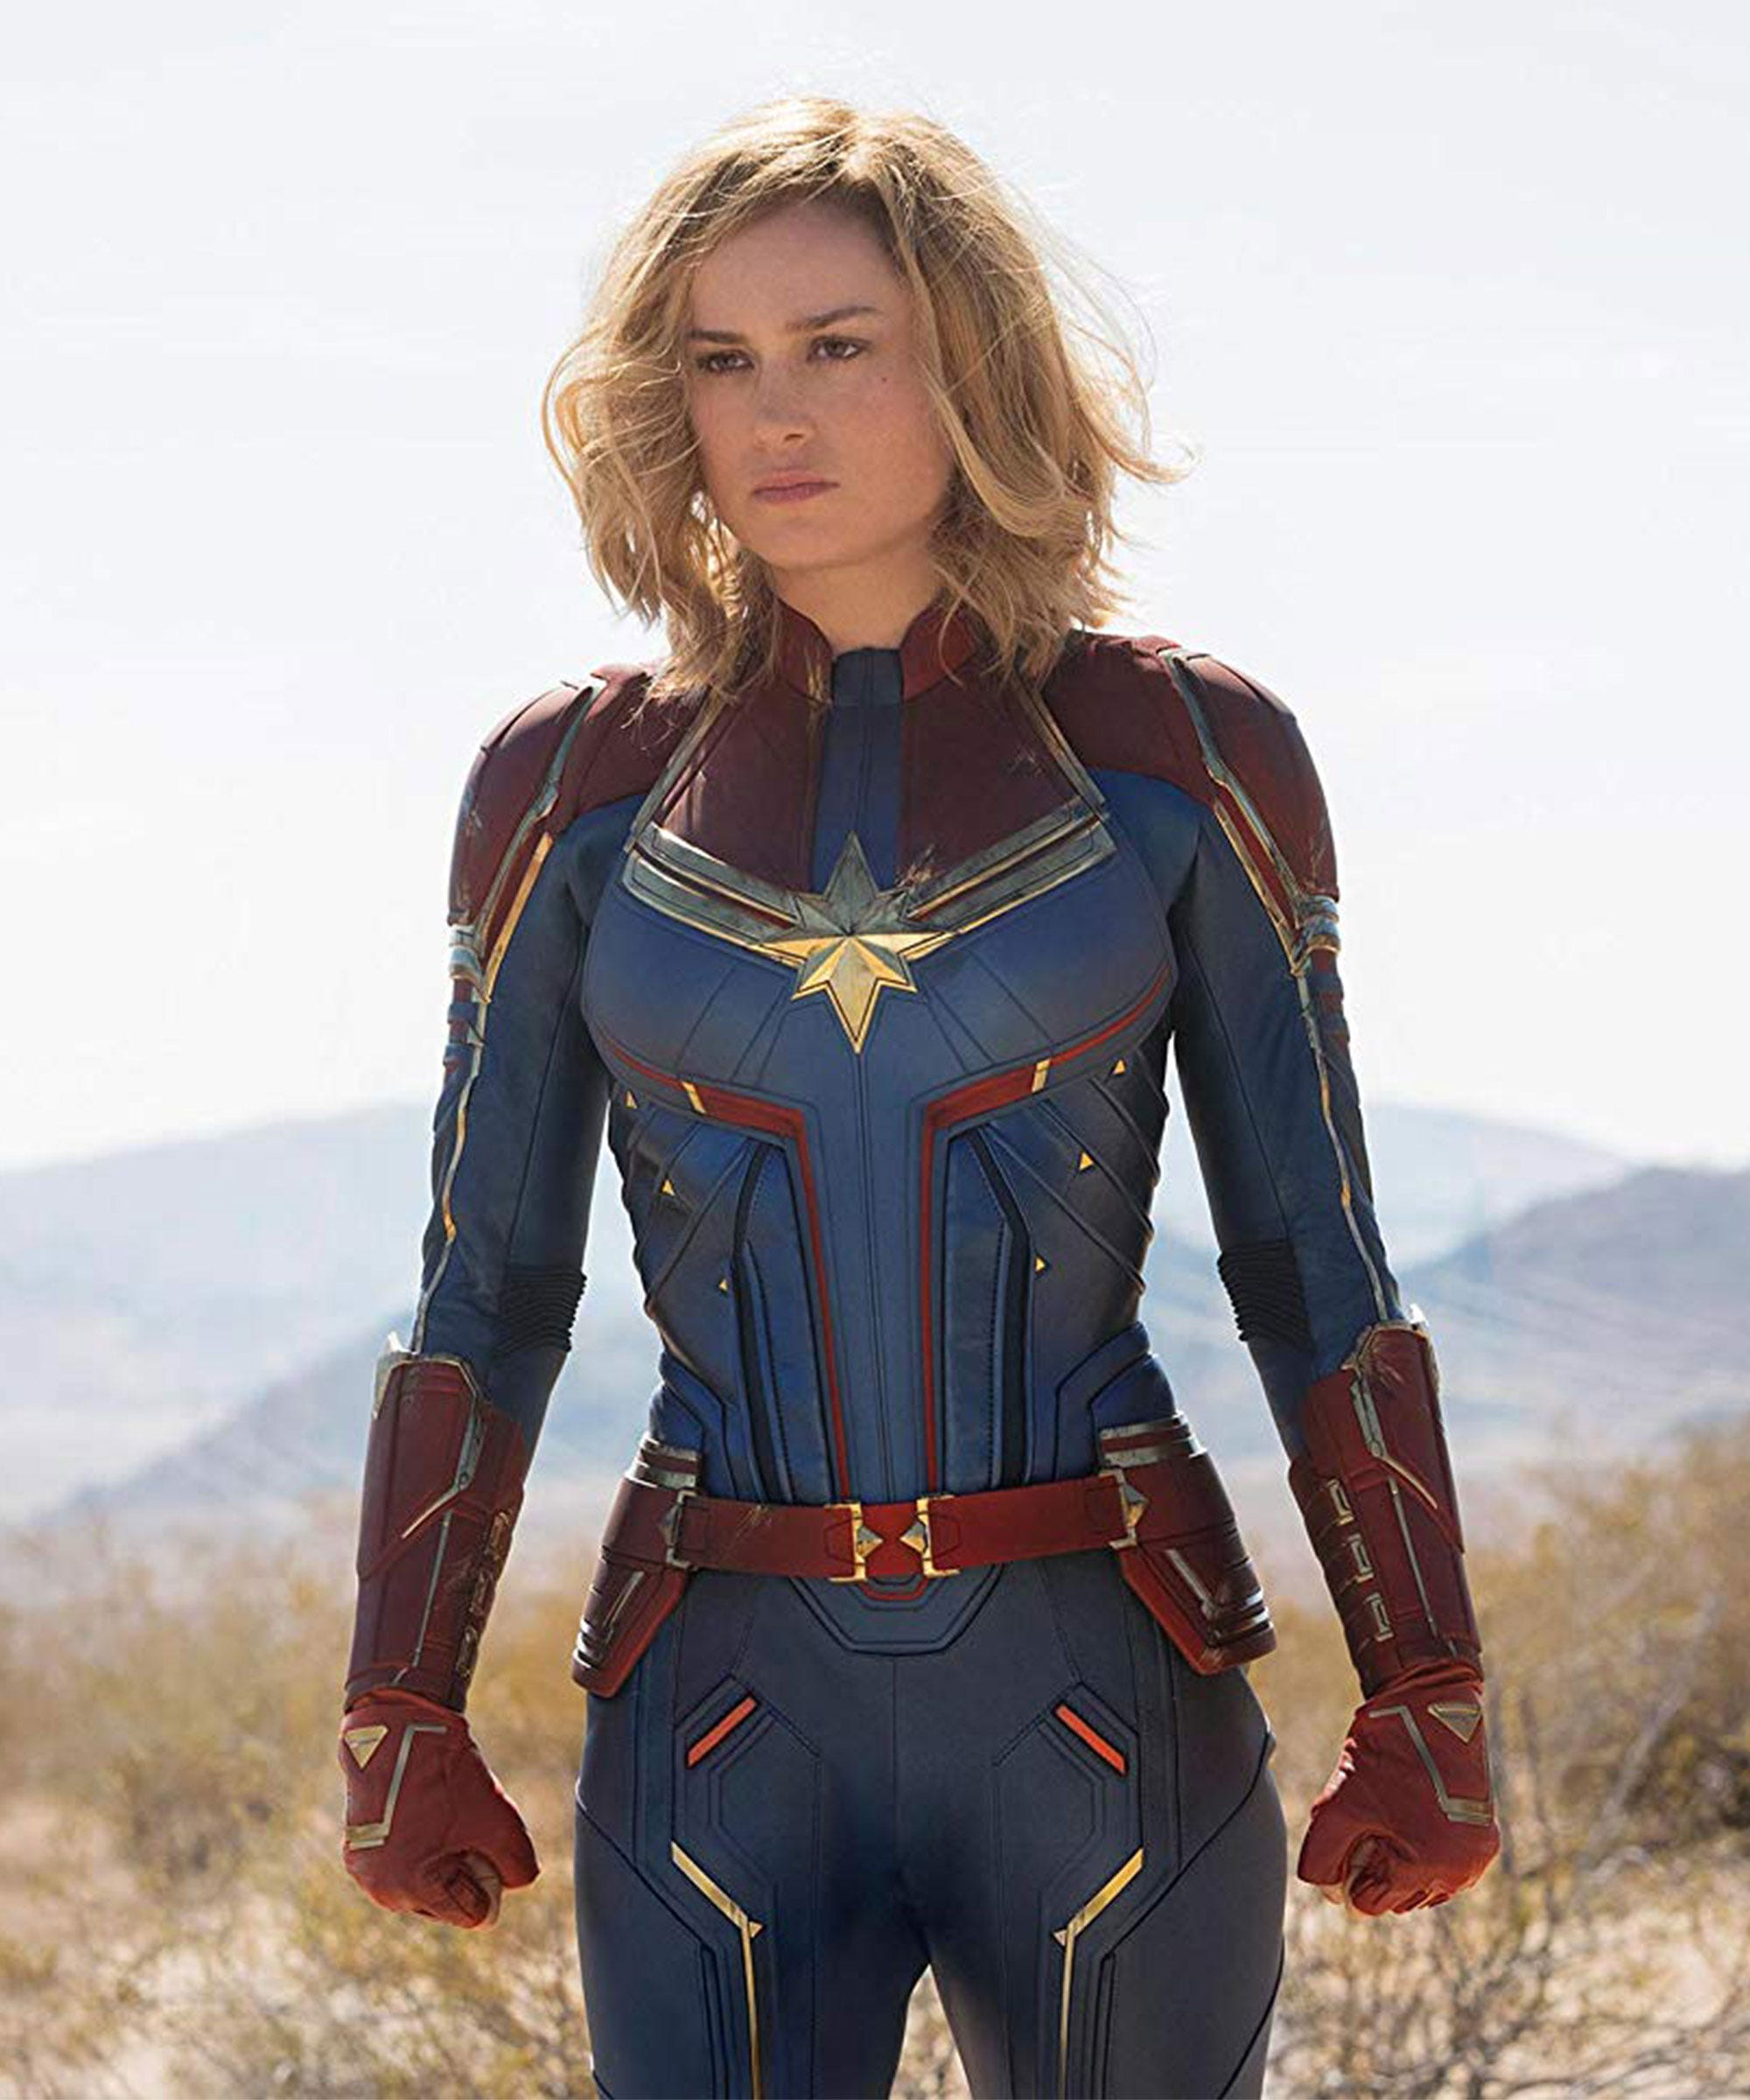 captain marvel hair sparks avengers endgame reactions